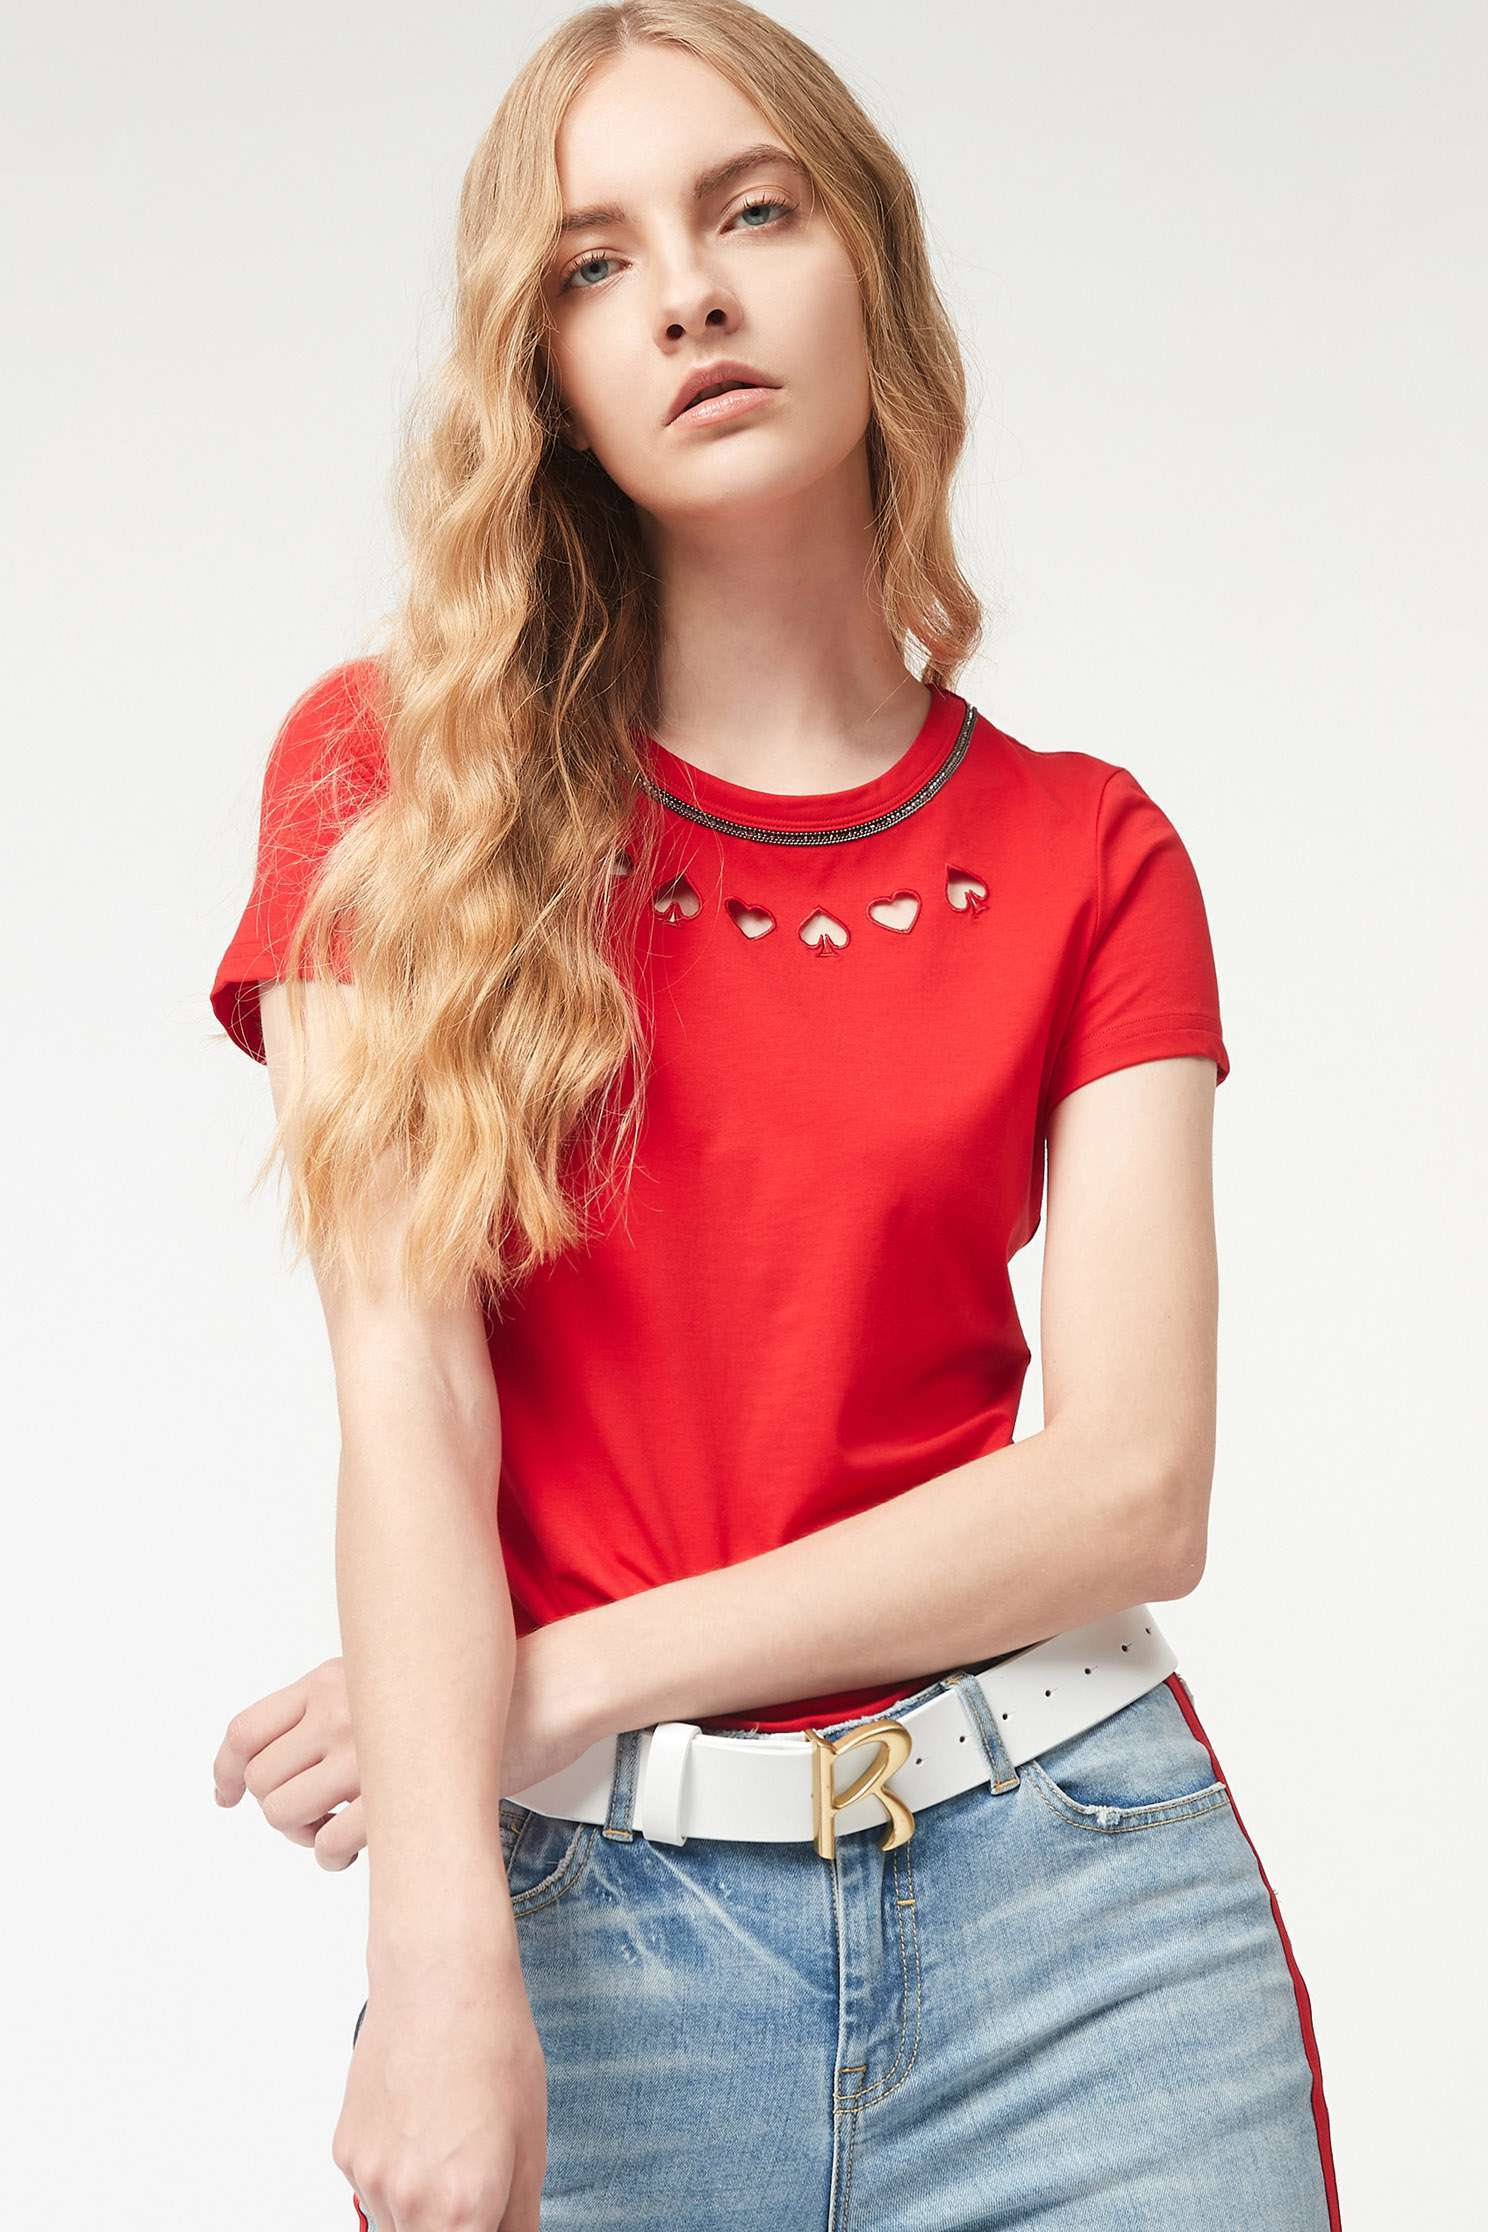 Round-necked hollow embroidered T-shirt